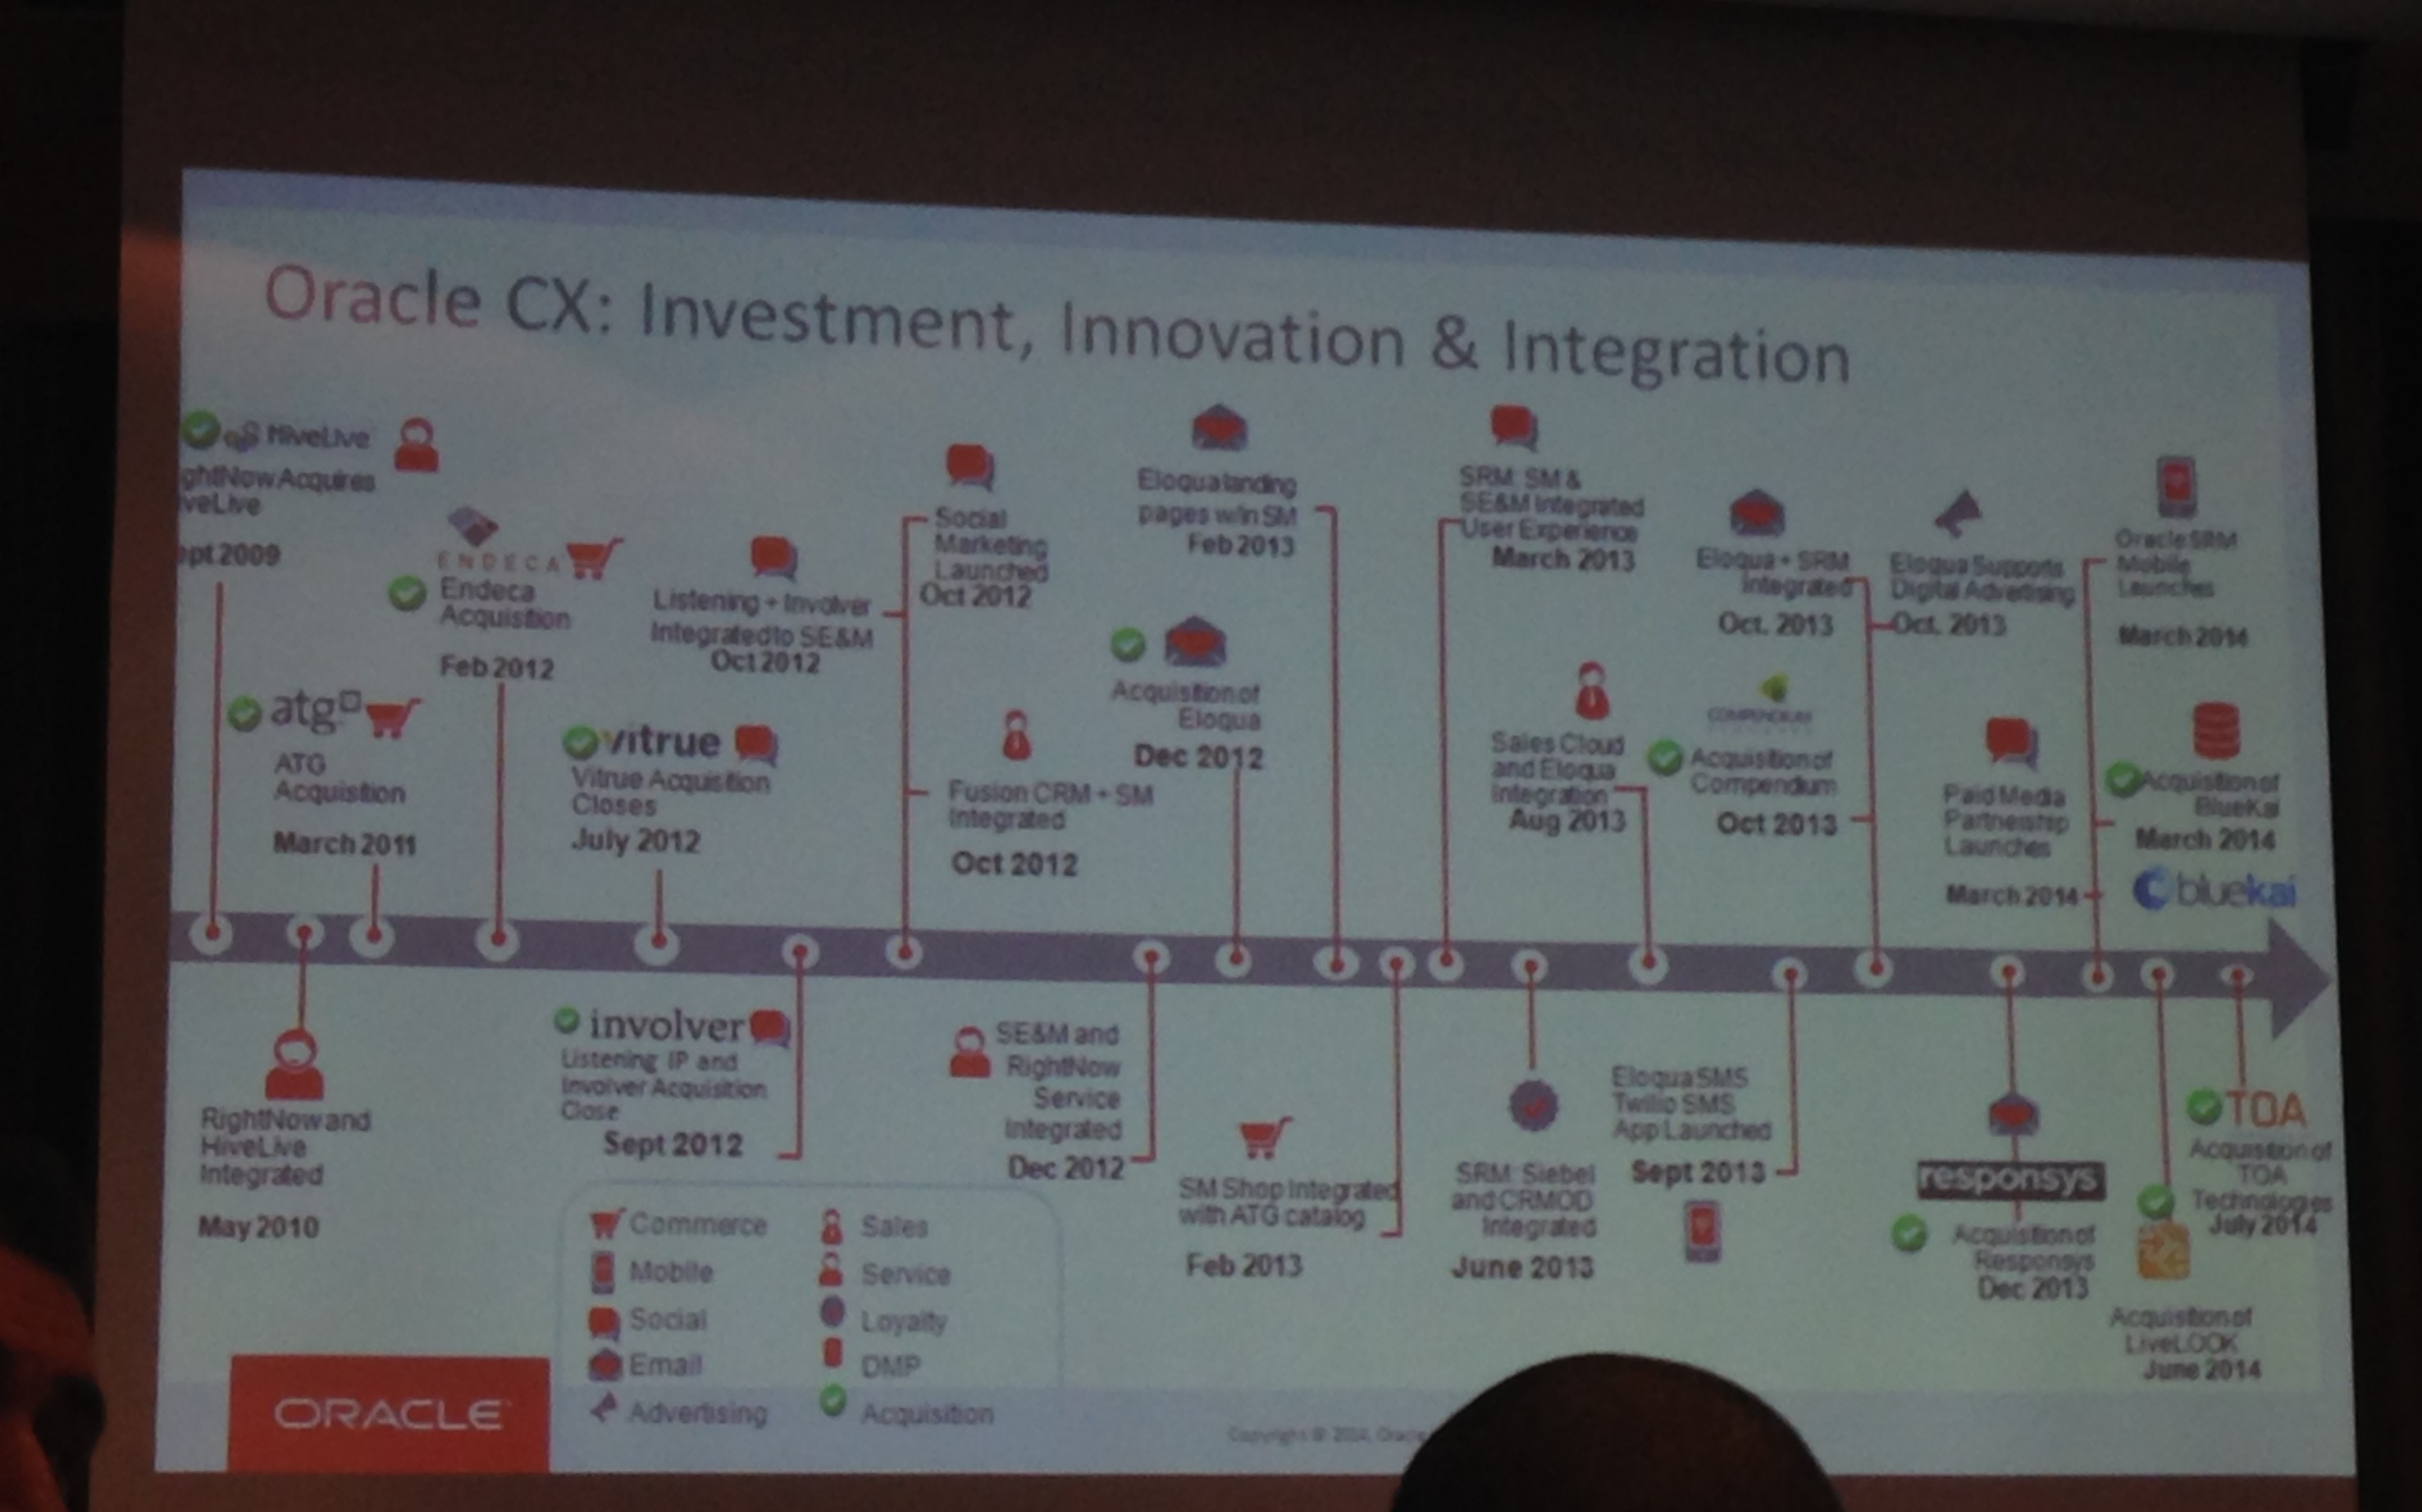 Oracle CX Acquisition timeline